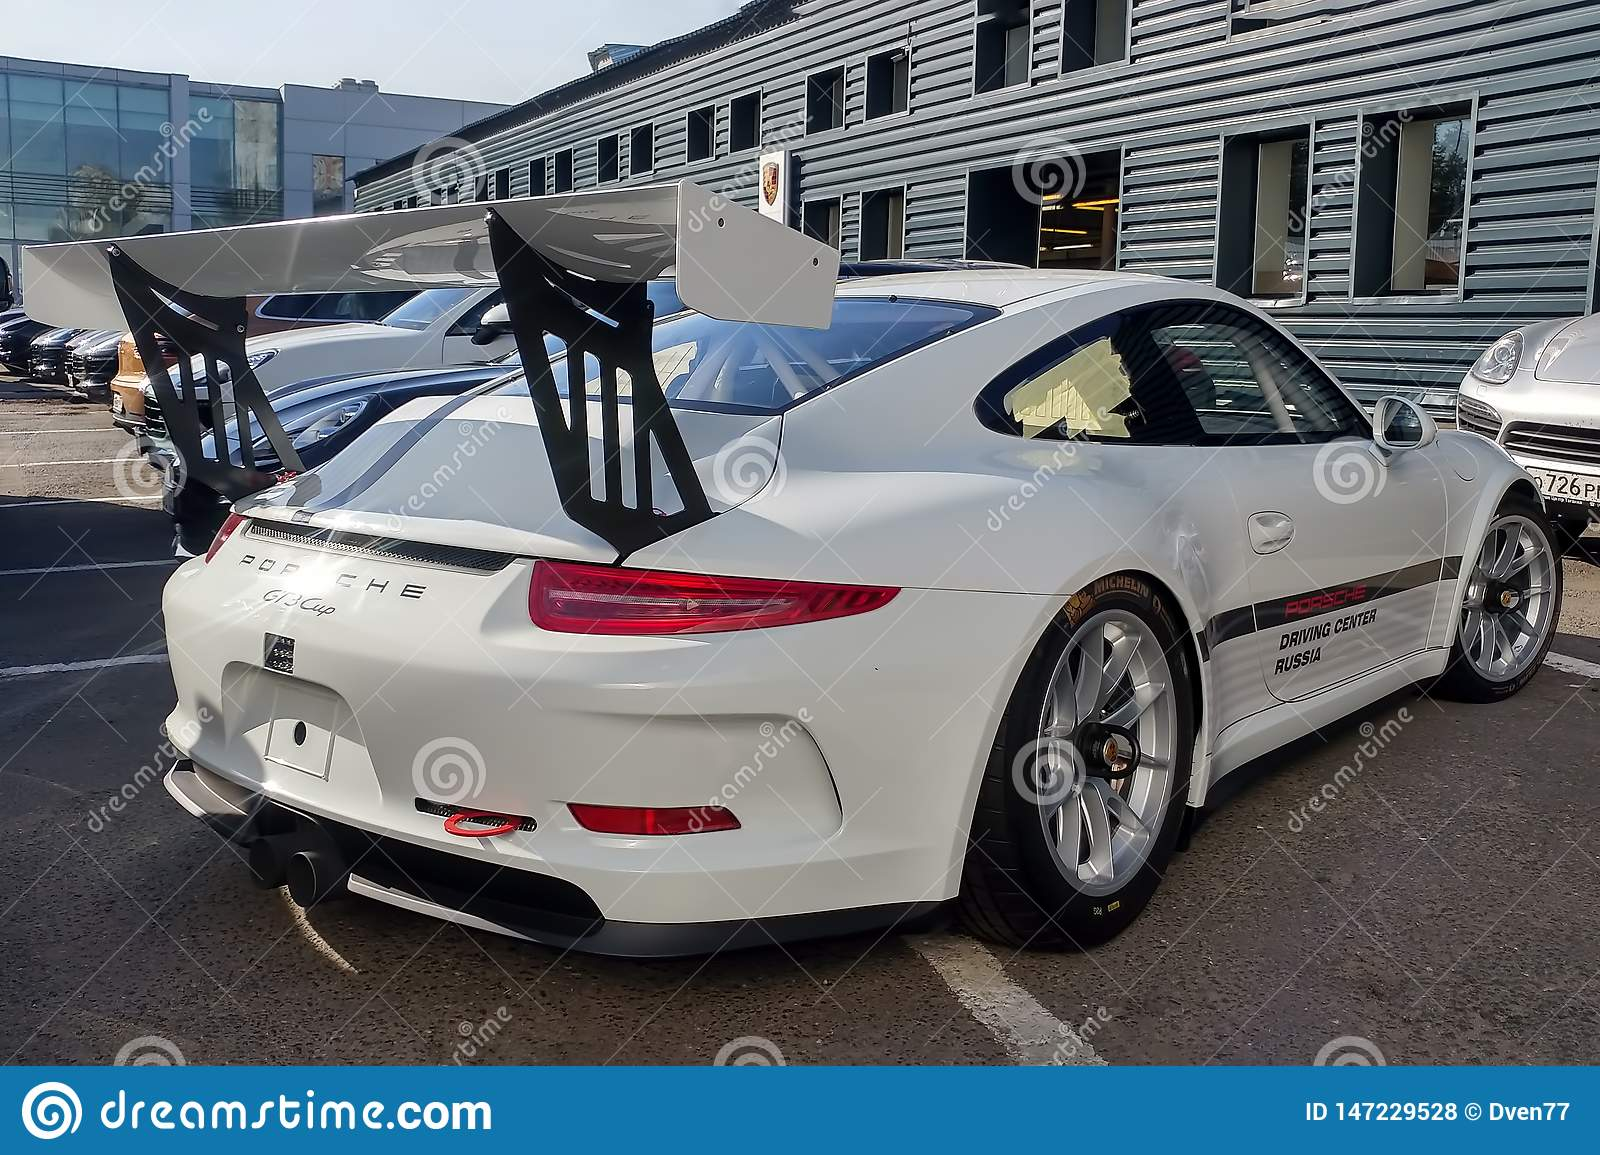 Moscow Russia May 05 2019 White Porsche 911 Gt3 Rs Cup Parked On The Street Super Tuned And Full Modified Racing Car Right Editorial Stock Photo Image Of Modern 2019 147229528